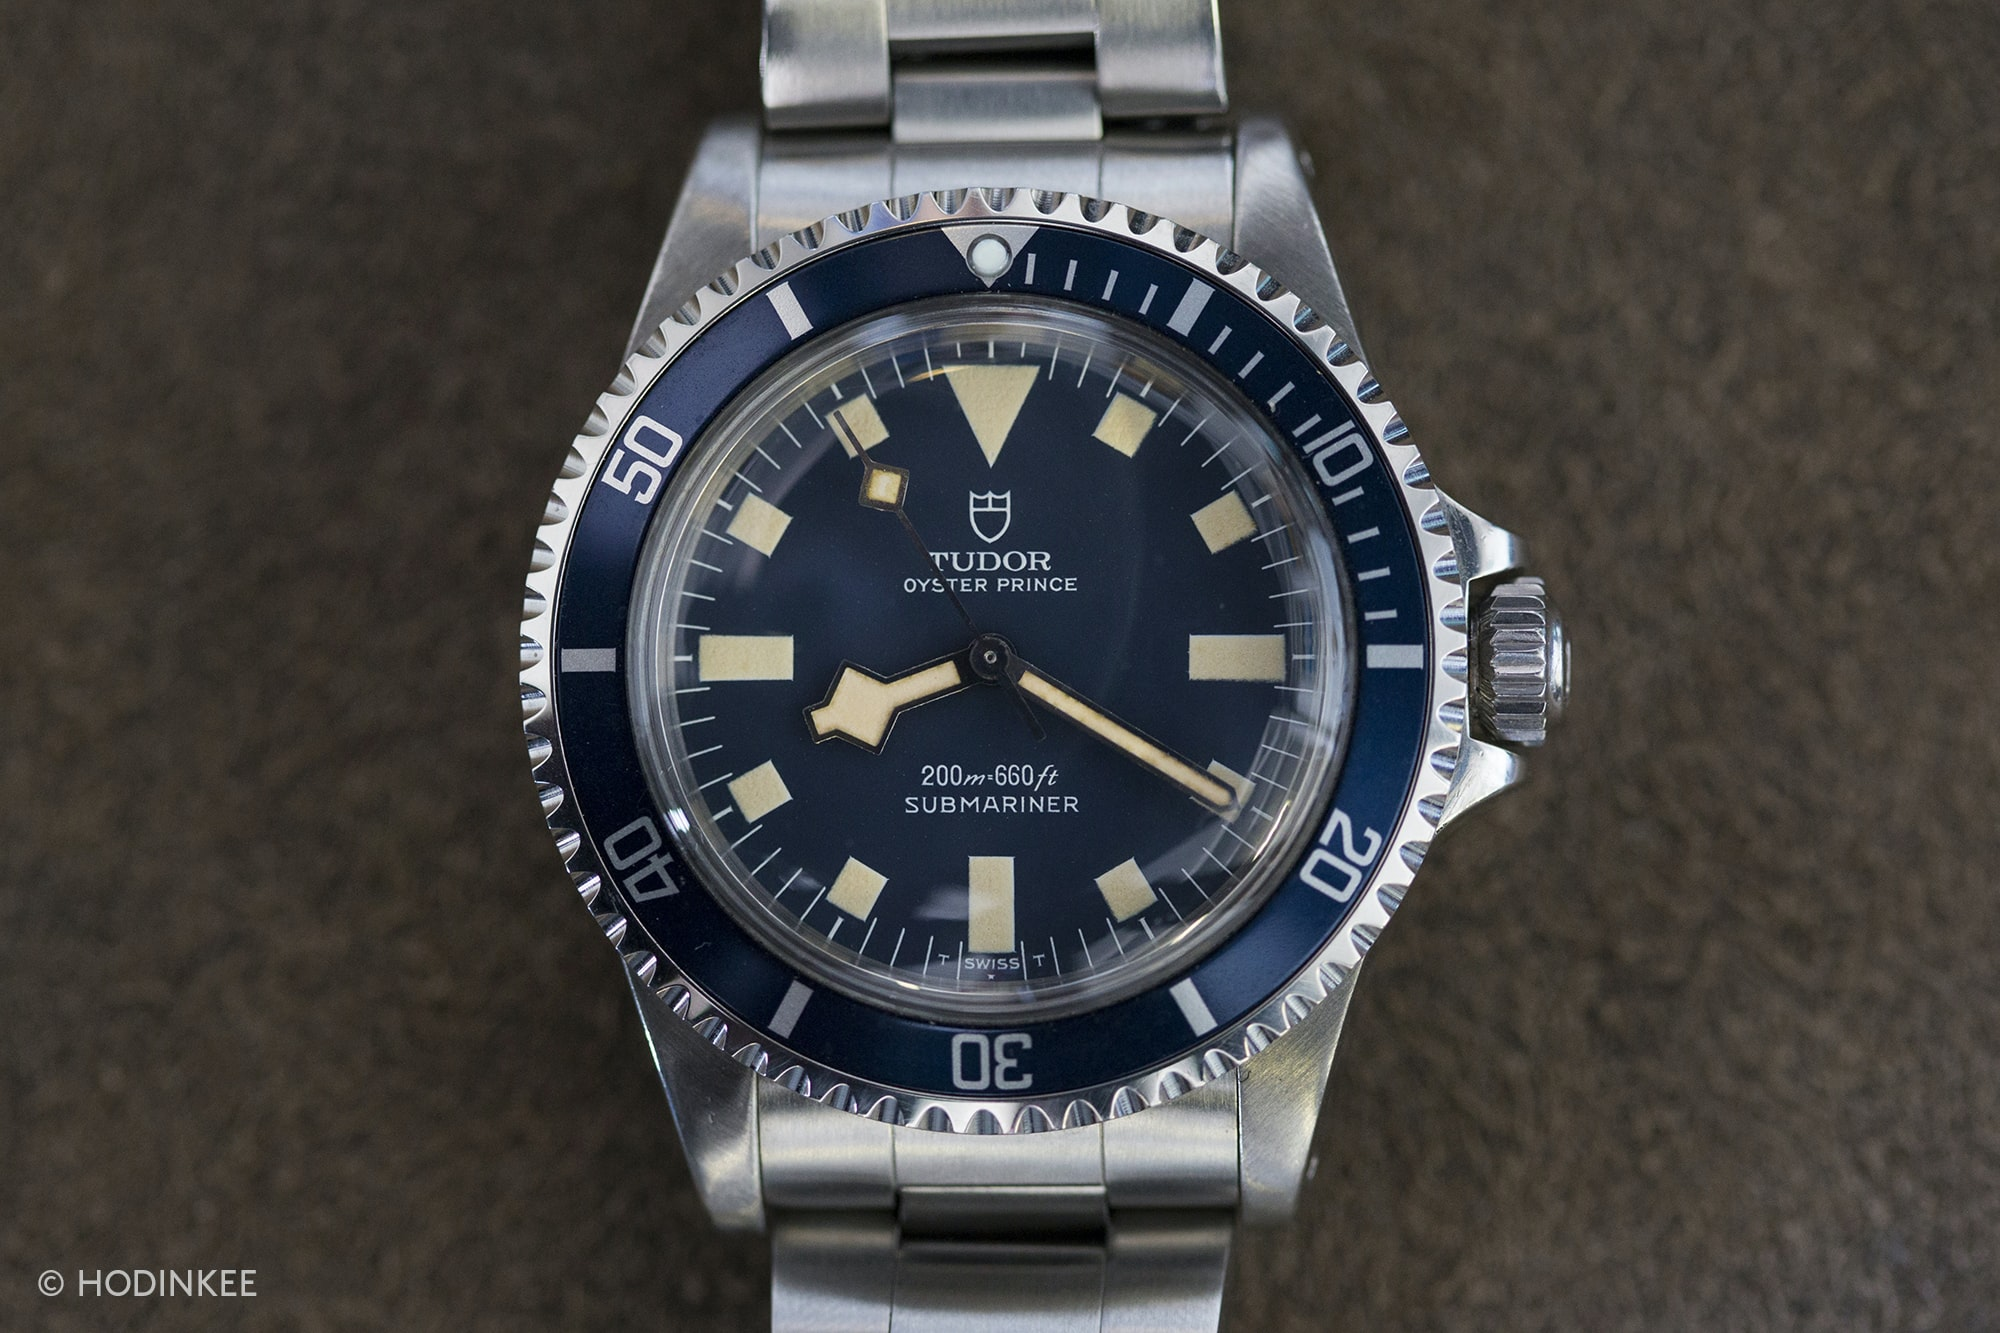 Spike Feresten Tudor Sub Talking Watches: With Spike Feresten Talking Watches: With Spike Feresten 20013720 copy